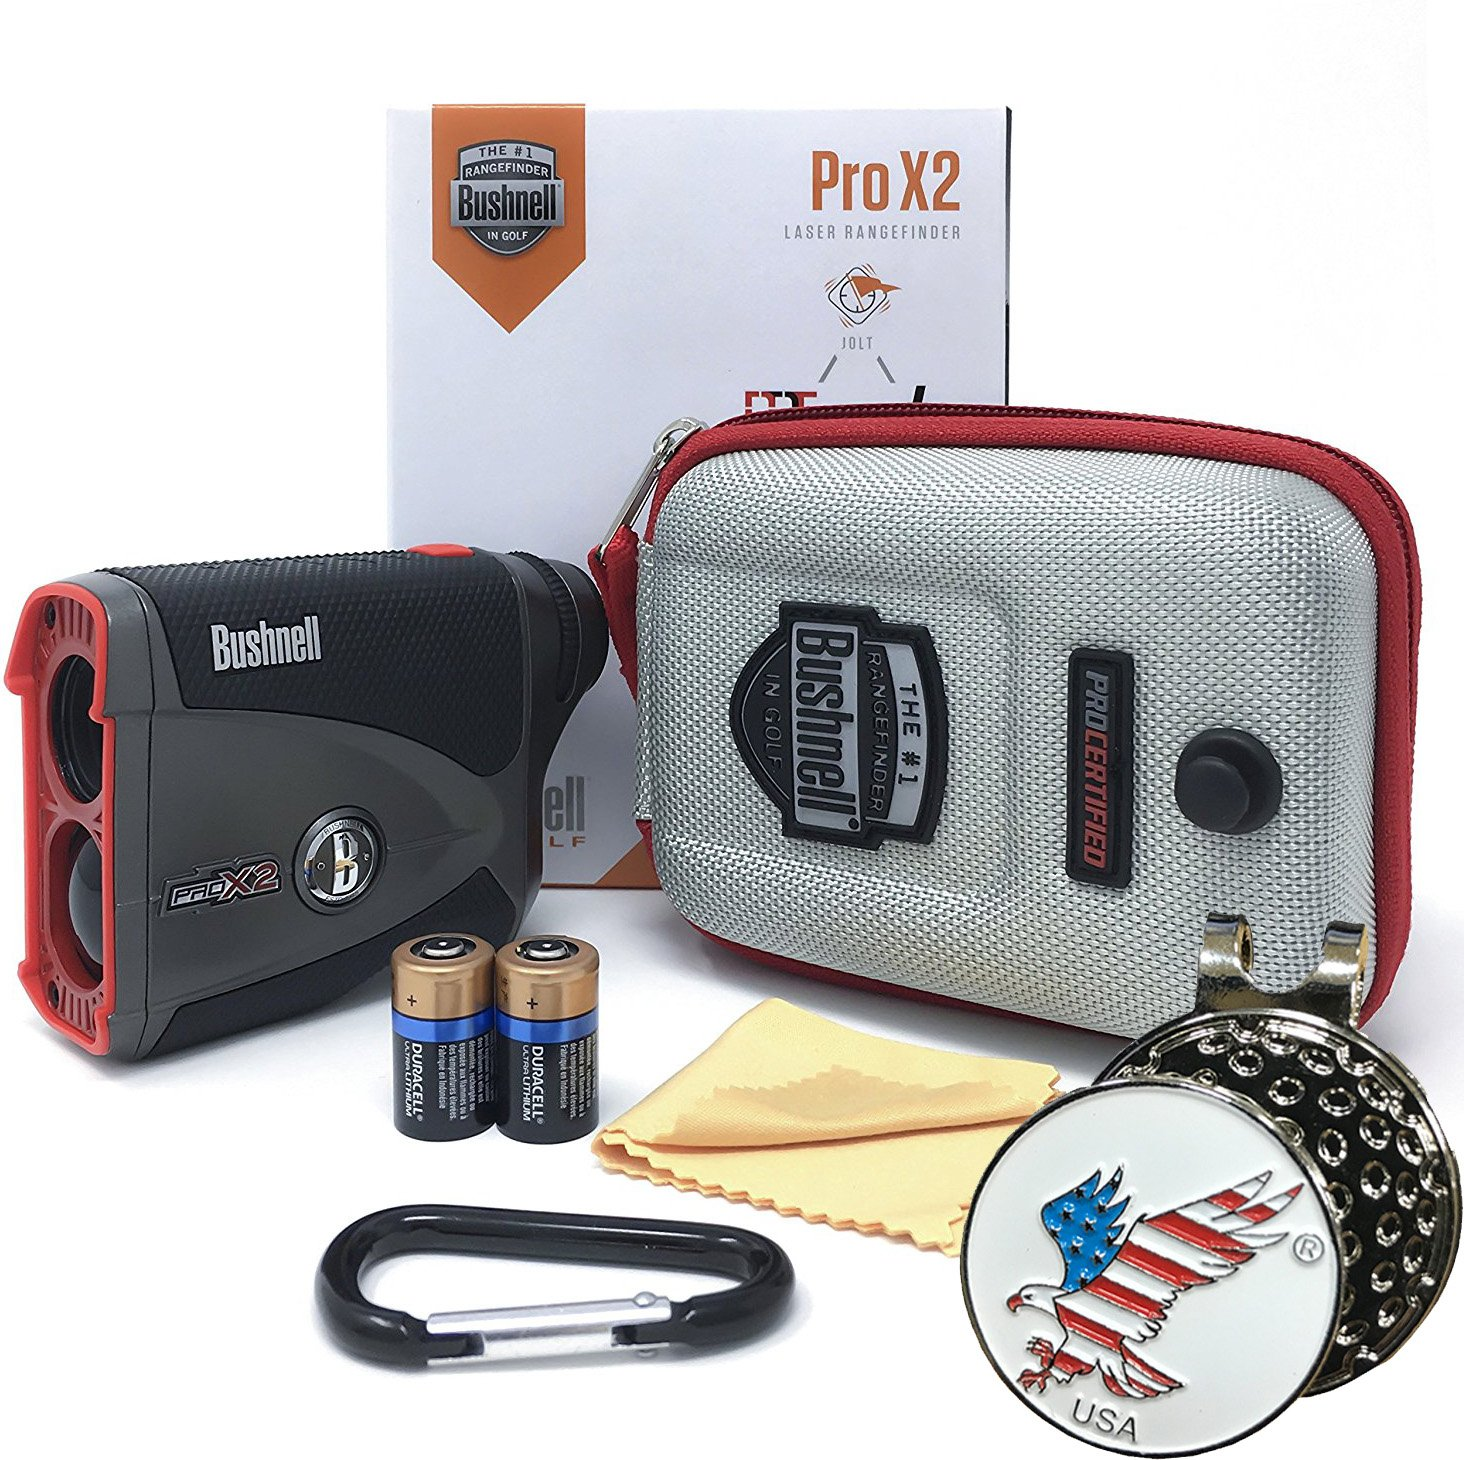 Bushnell Pro X2 Golf Laser Rangefinder GIFT BUNDLE | Includes Golf Rangefinder (Slope & Non-Slope Function) with Carrying Case(Clip included), Custom Ball Marker Hat Clip Set and Two (2) CR2 Batteries